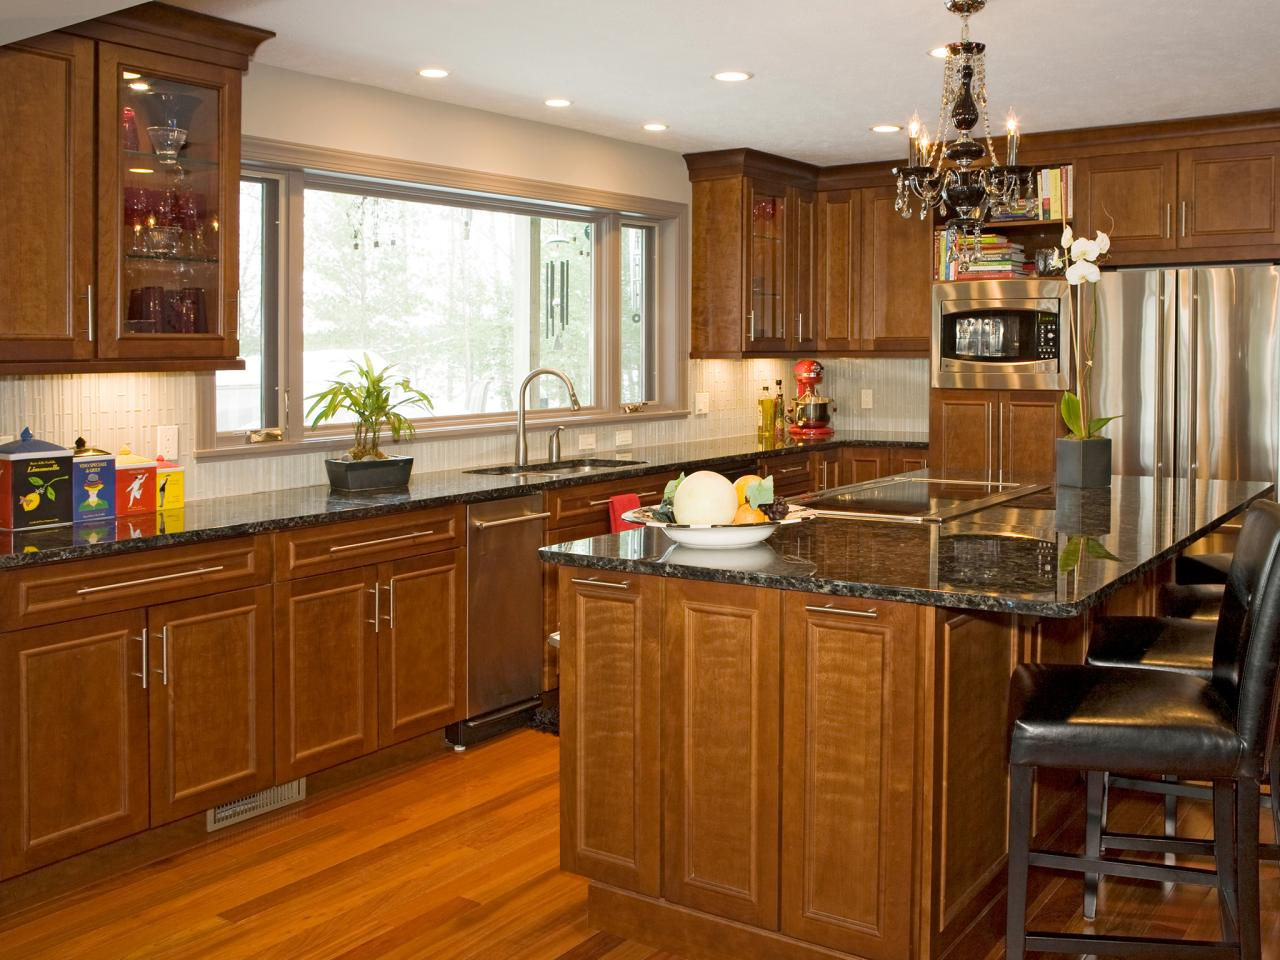 Exceptionnel Dark Wood Kitchen Cabinets With Patterned Backsplash